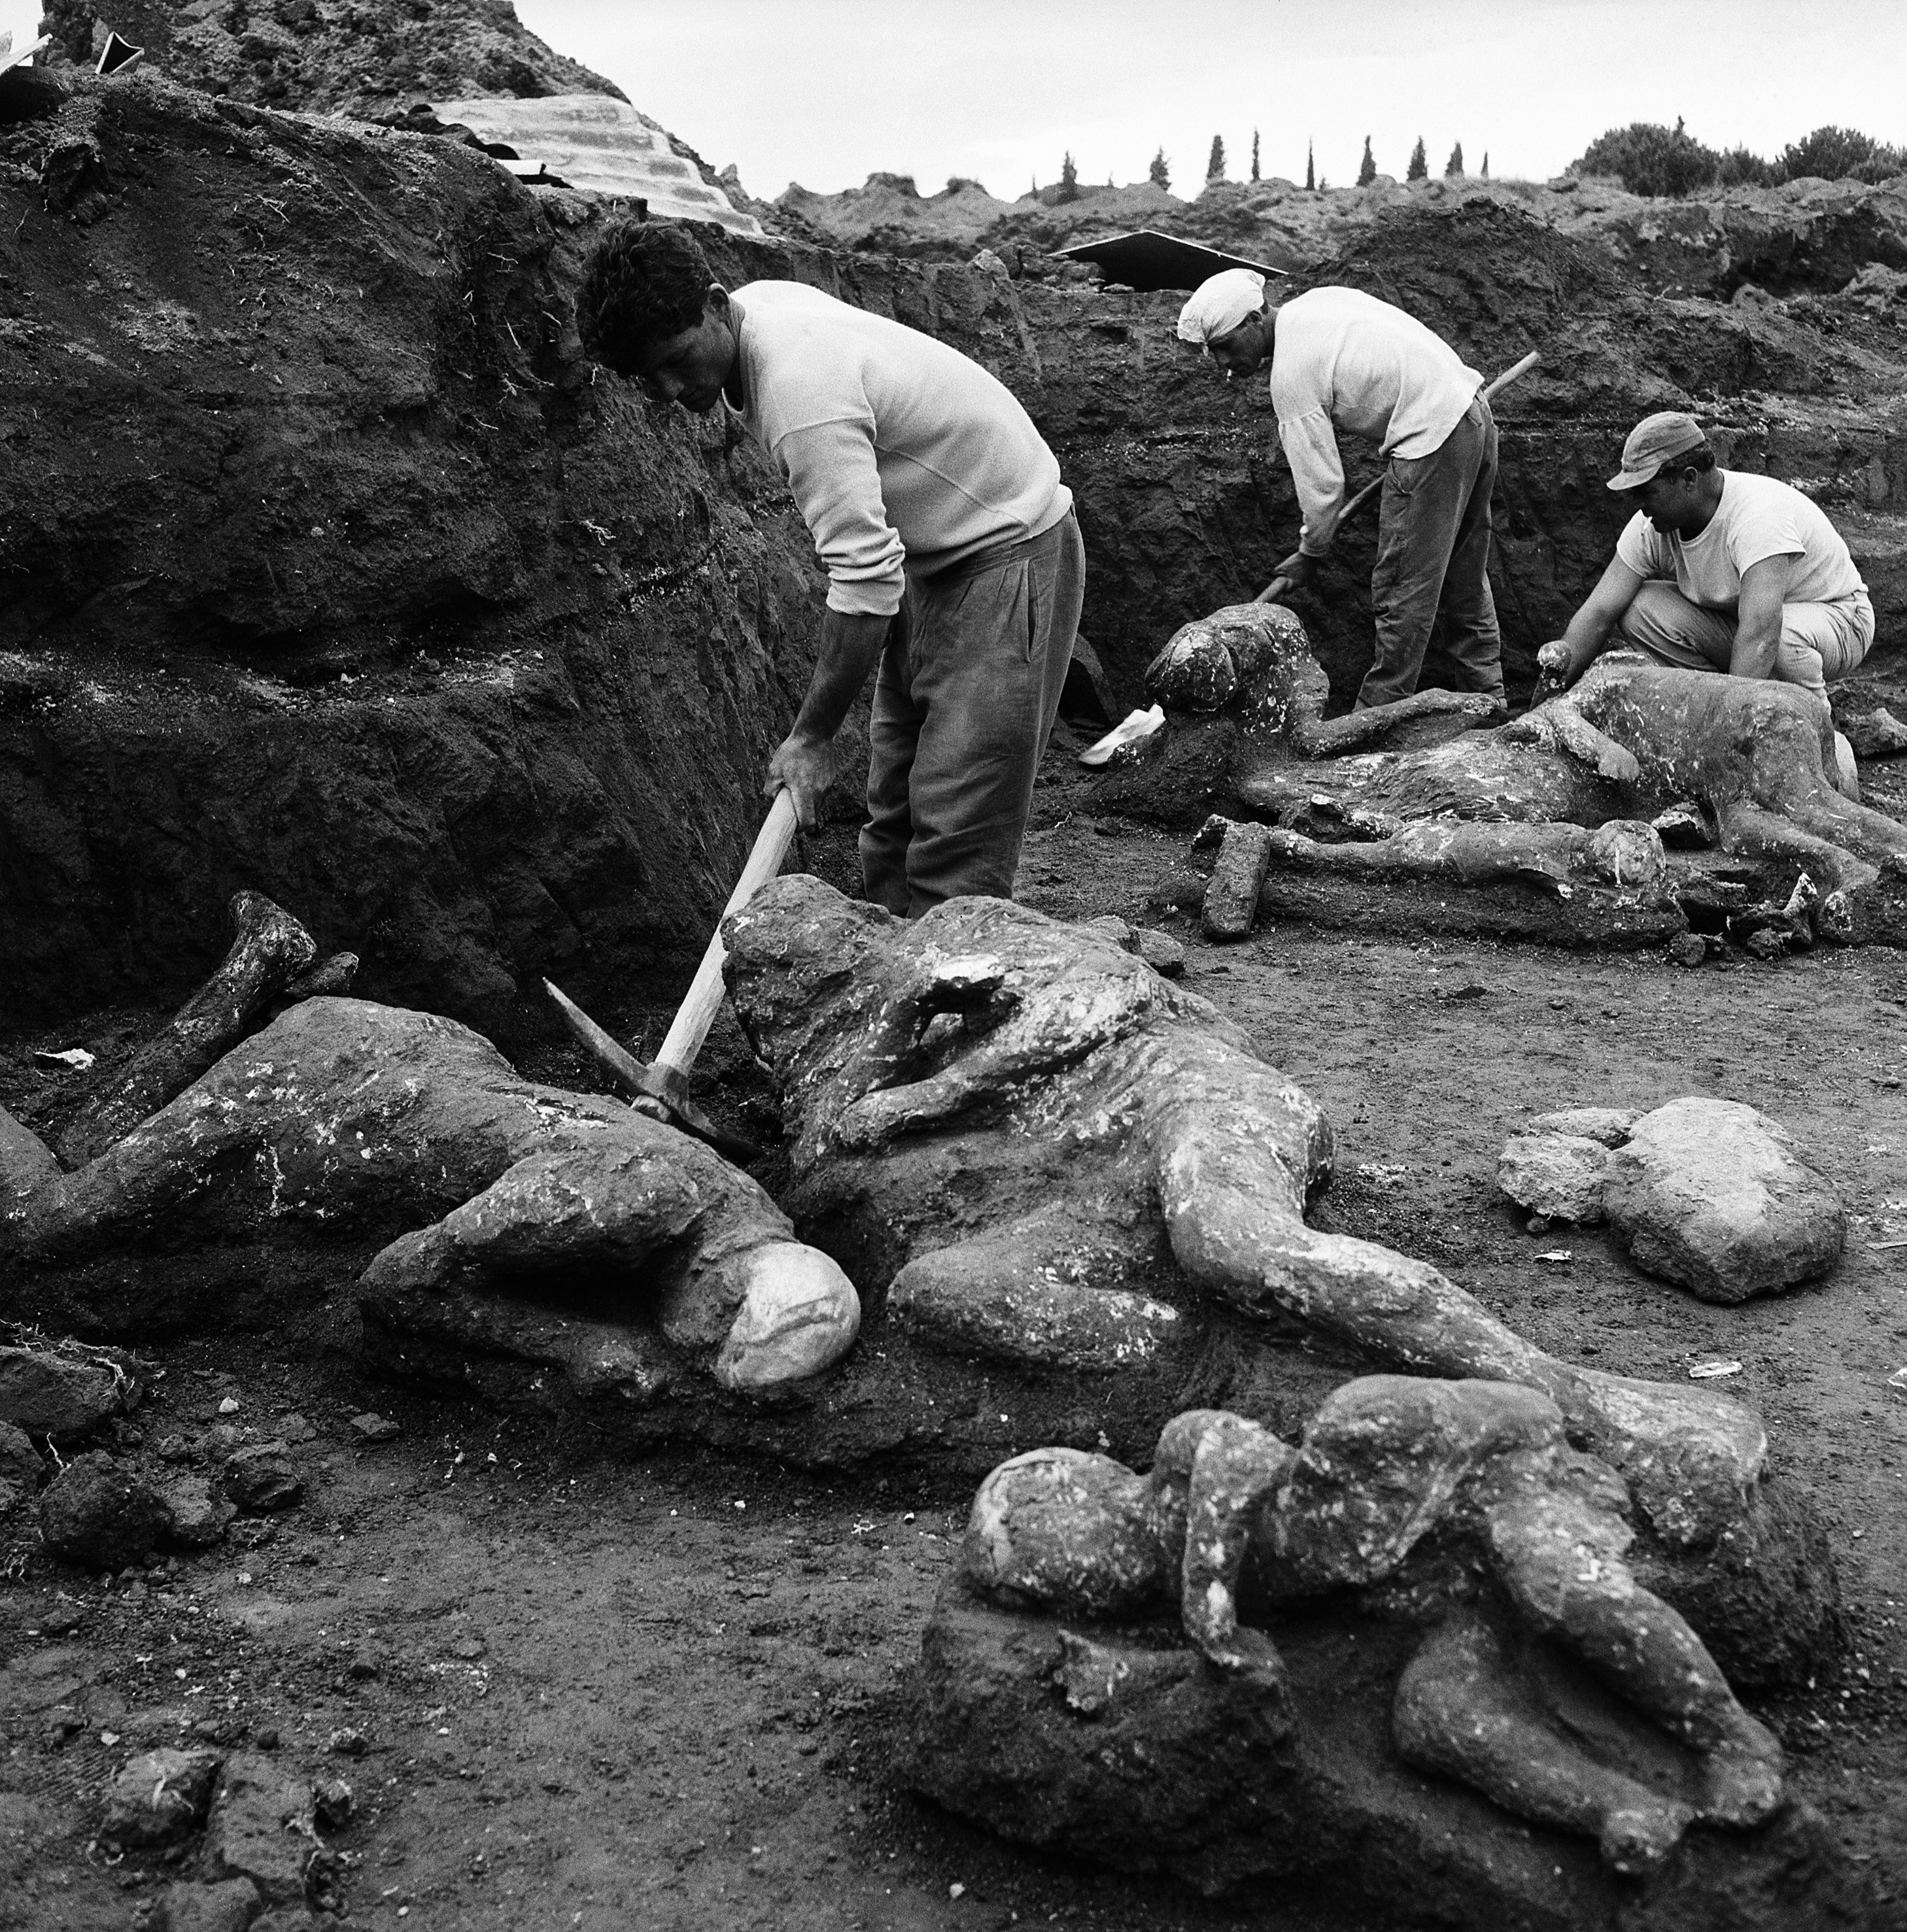 Archaeologists unearth victims in the Garden of the Fugitives.